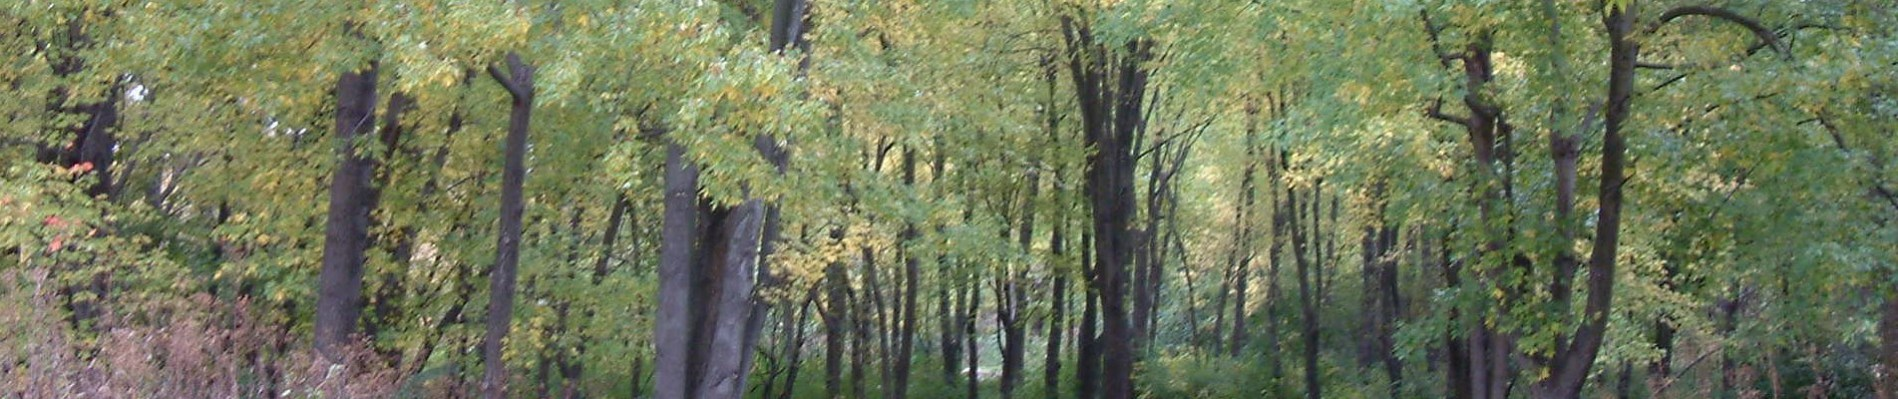 Banner of fall trees